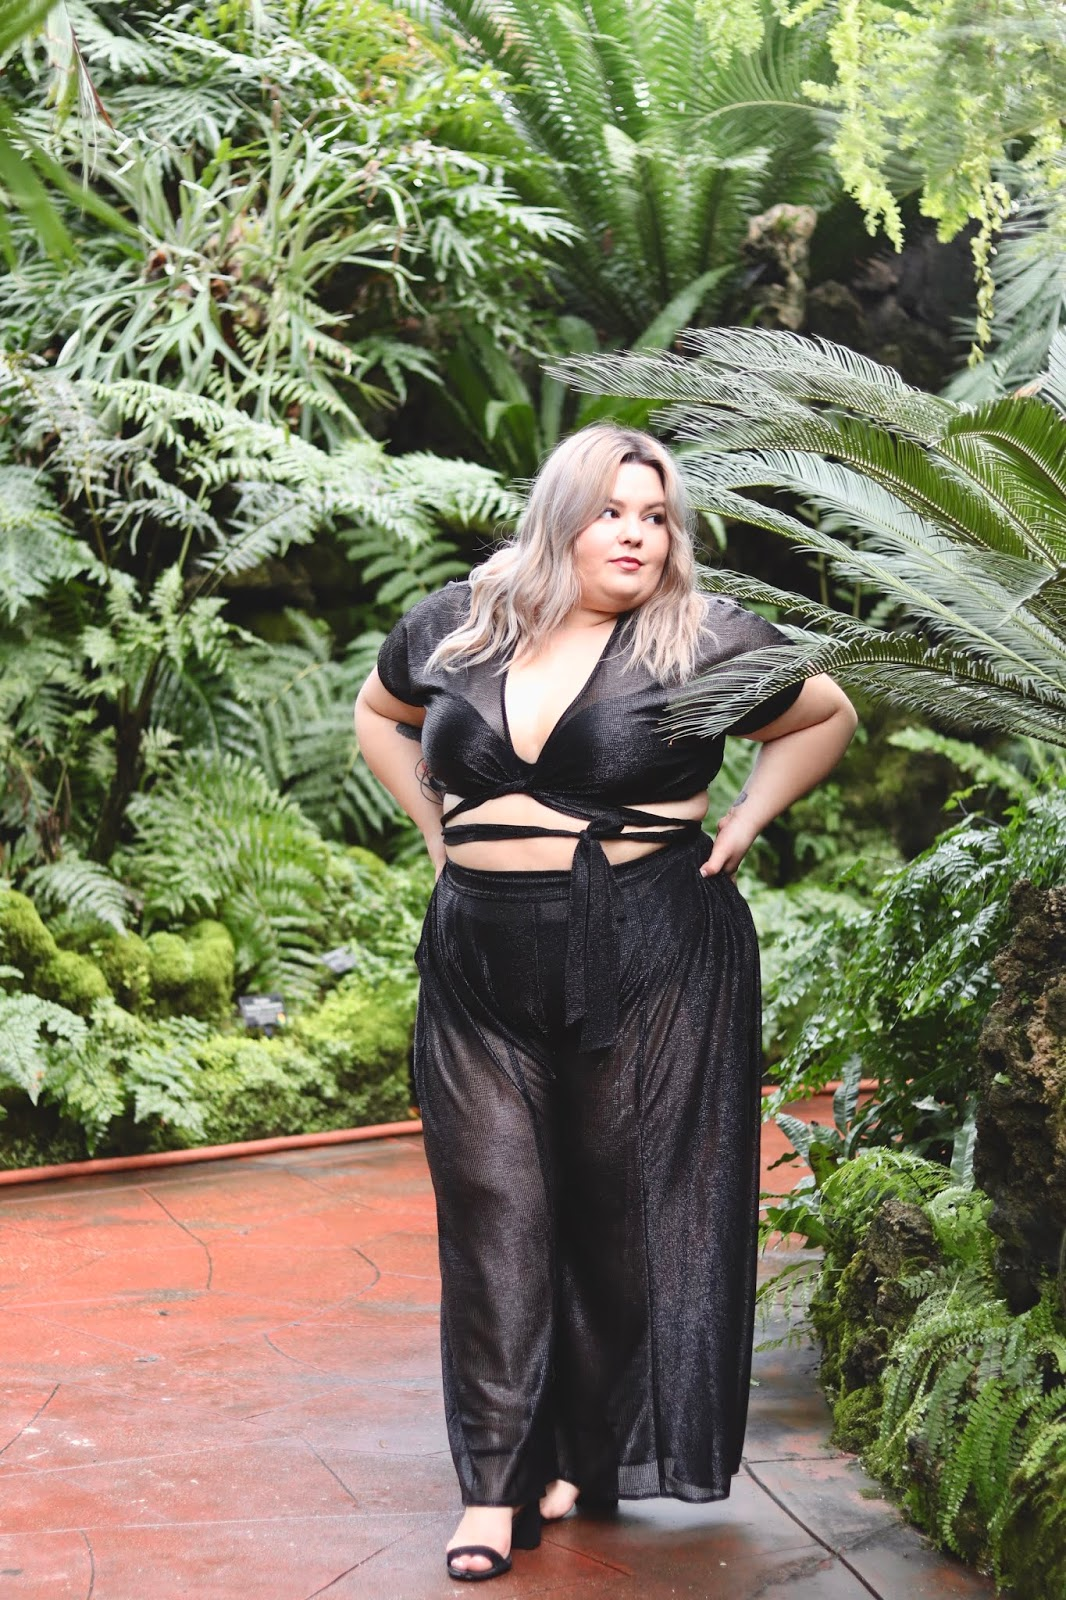 Chicago Plus Size Petite Fashion Blogger, YouTuber and model Natalie Craig, of Natalie in the City, reviews Premme by Gabi Gregg and Nicolette Mason